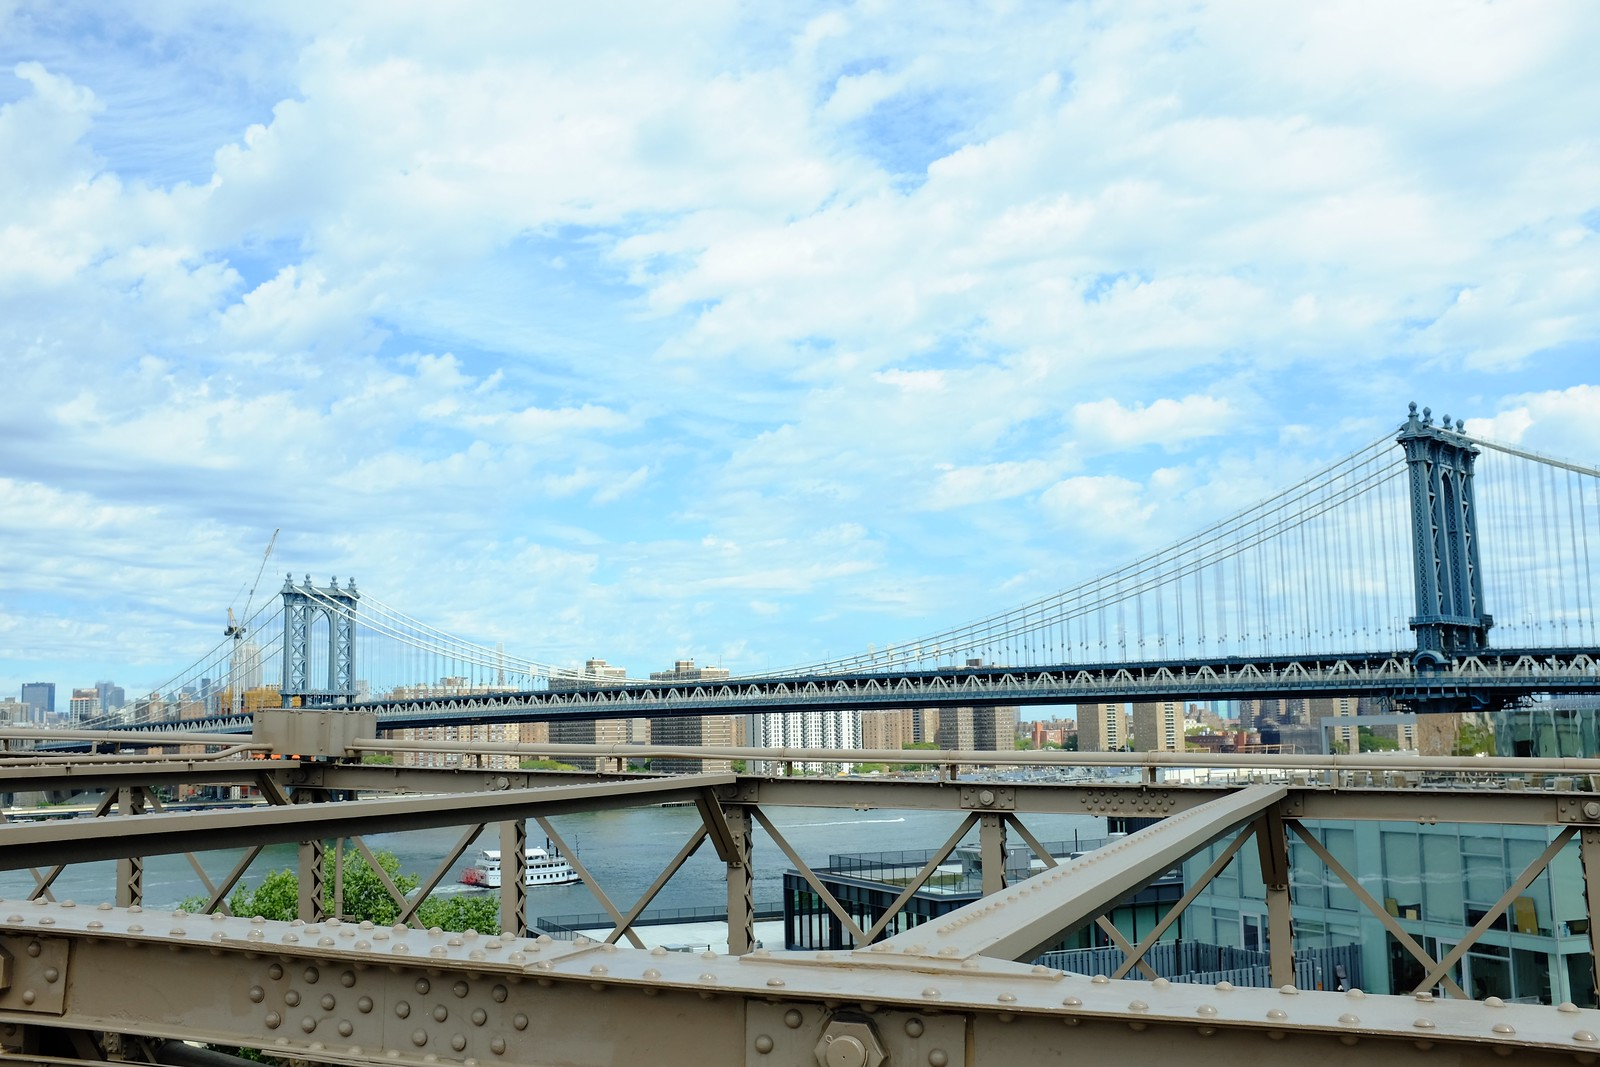 The Brooklyn Bridge by FUJIFILM X100S.